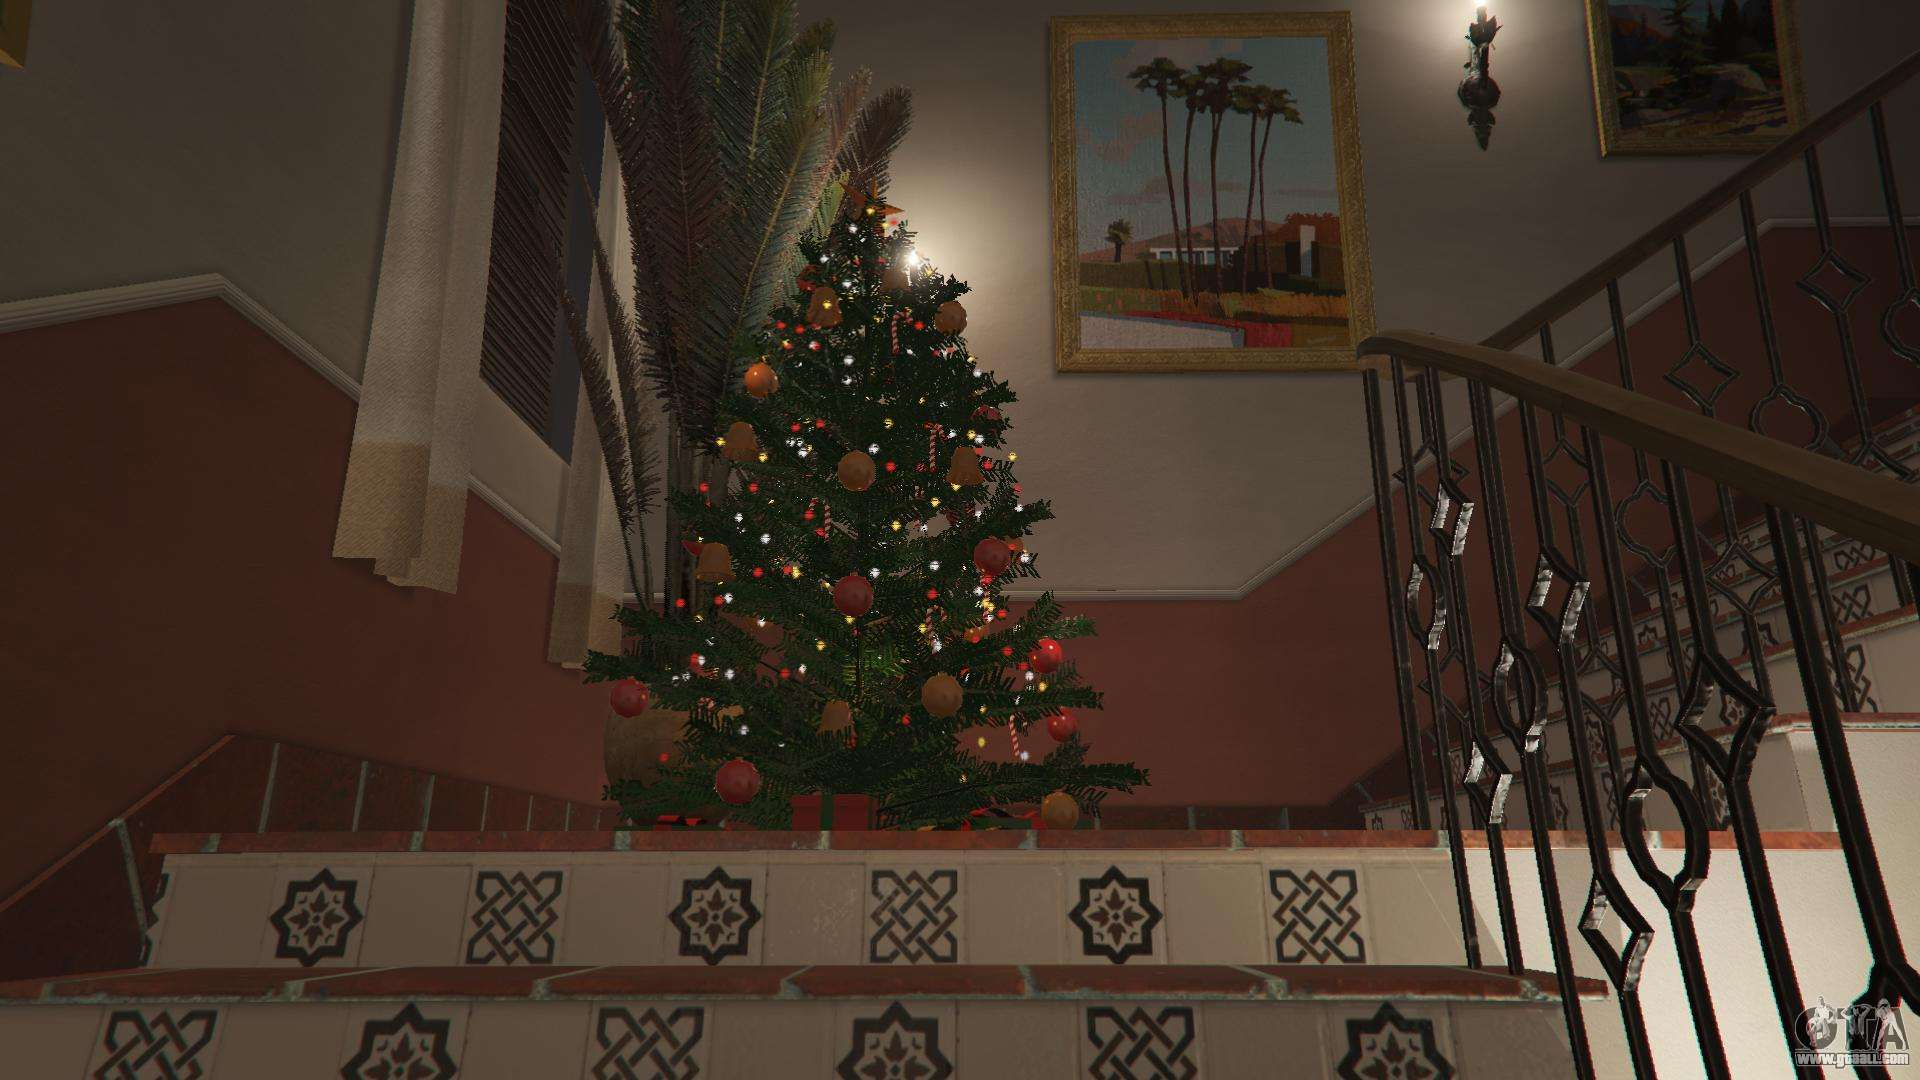 gta 5 christmas decorations for michaels house fourth screenshot - Michaels Christmas Decorations 2015